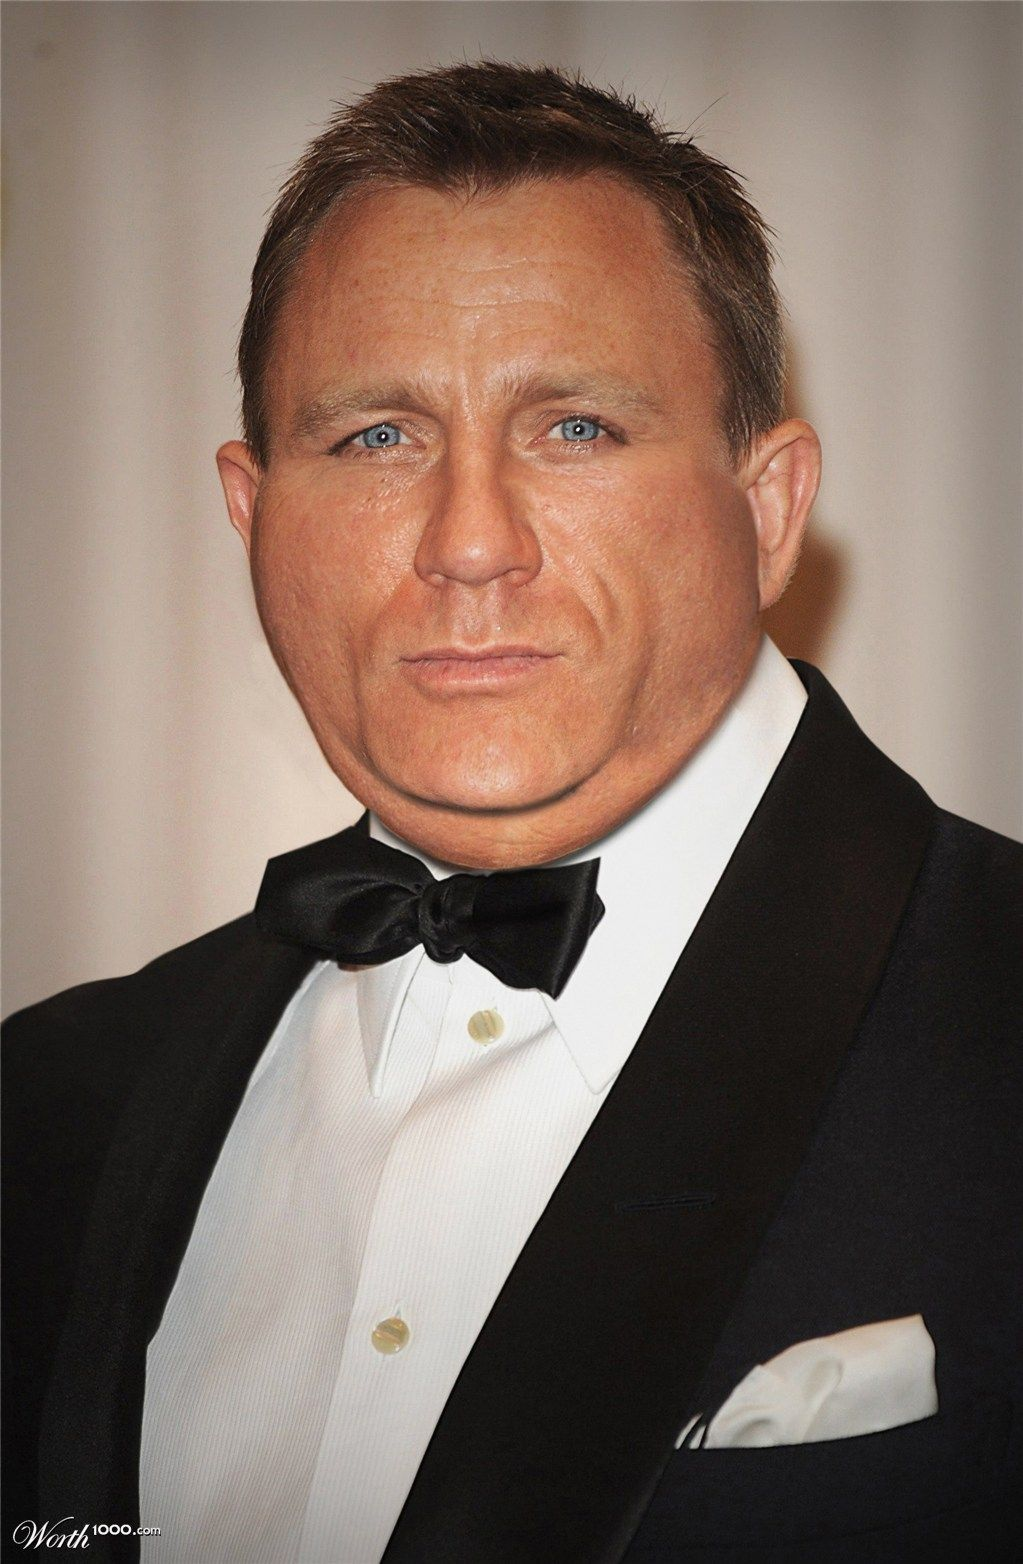 Fat James Bond